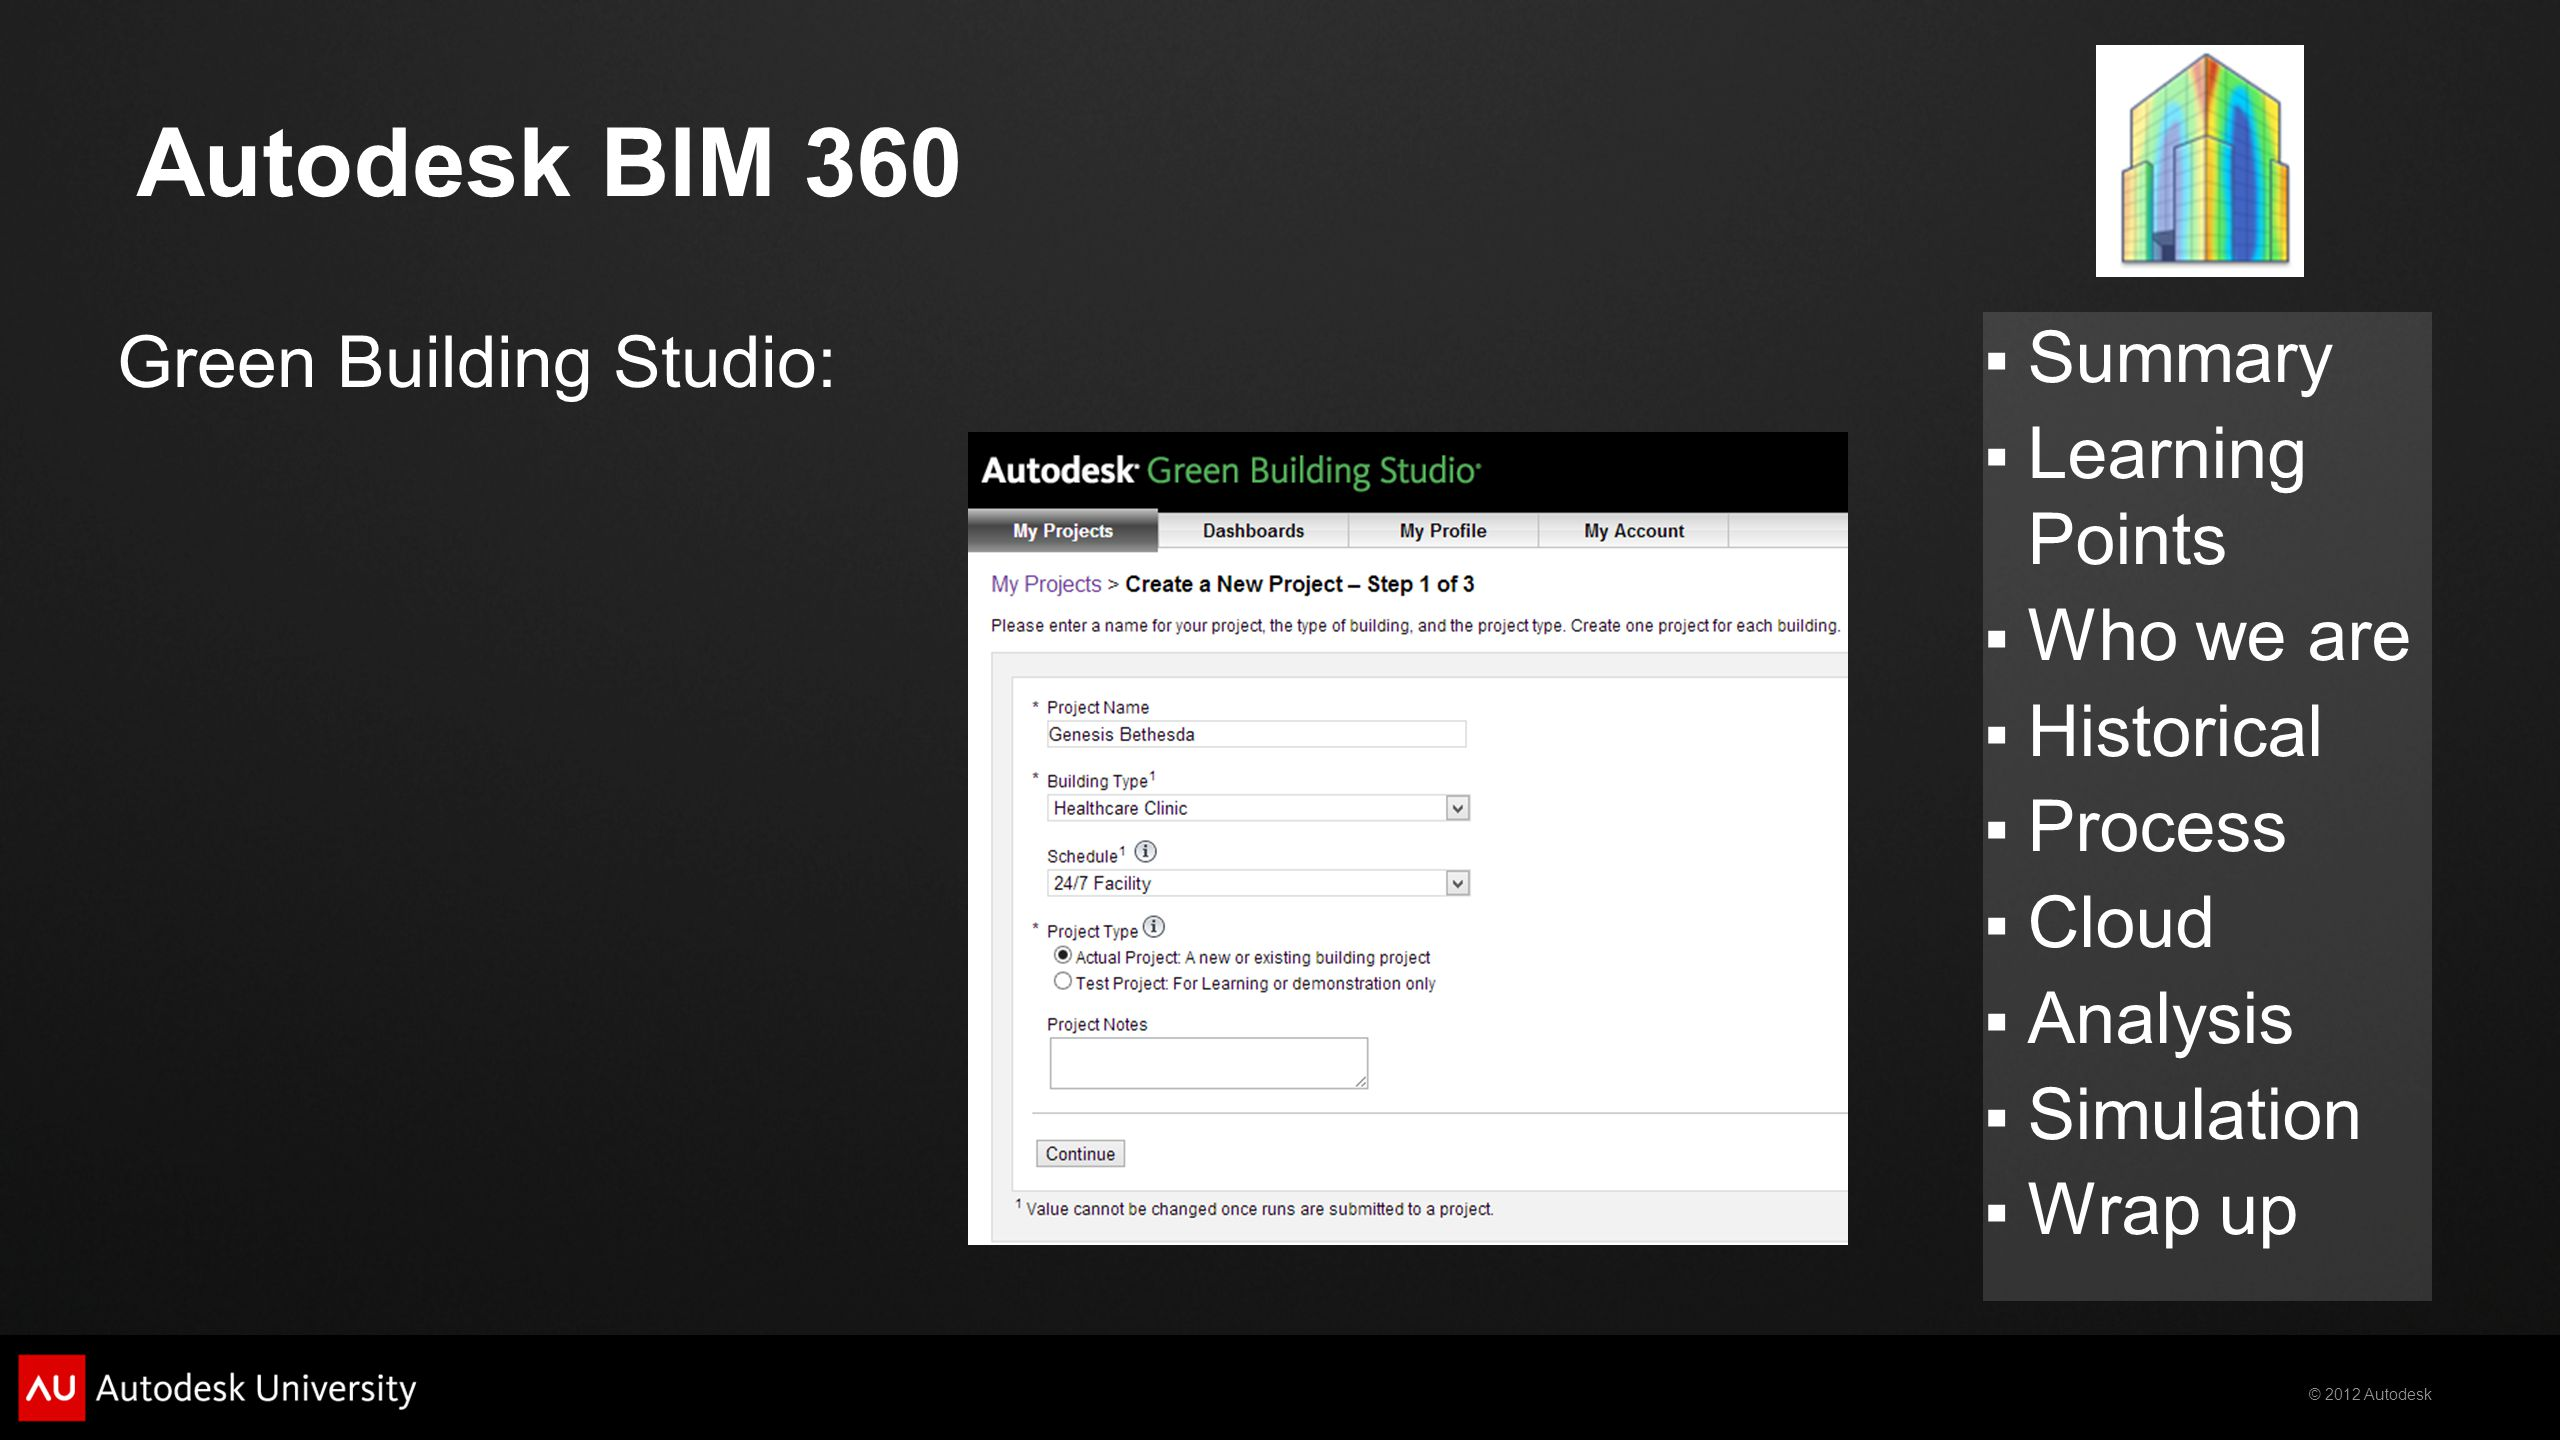 © 2012 Autodesk  Summary  Learning Points  Who we are  Historical  Process  Cloud  Analysis  Simulation  Wrap up Autodesk BIM 360 Green Building Studio: